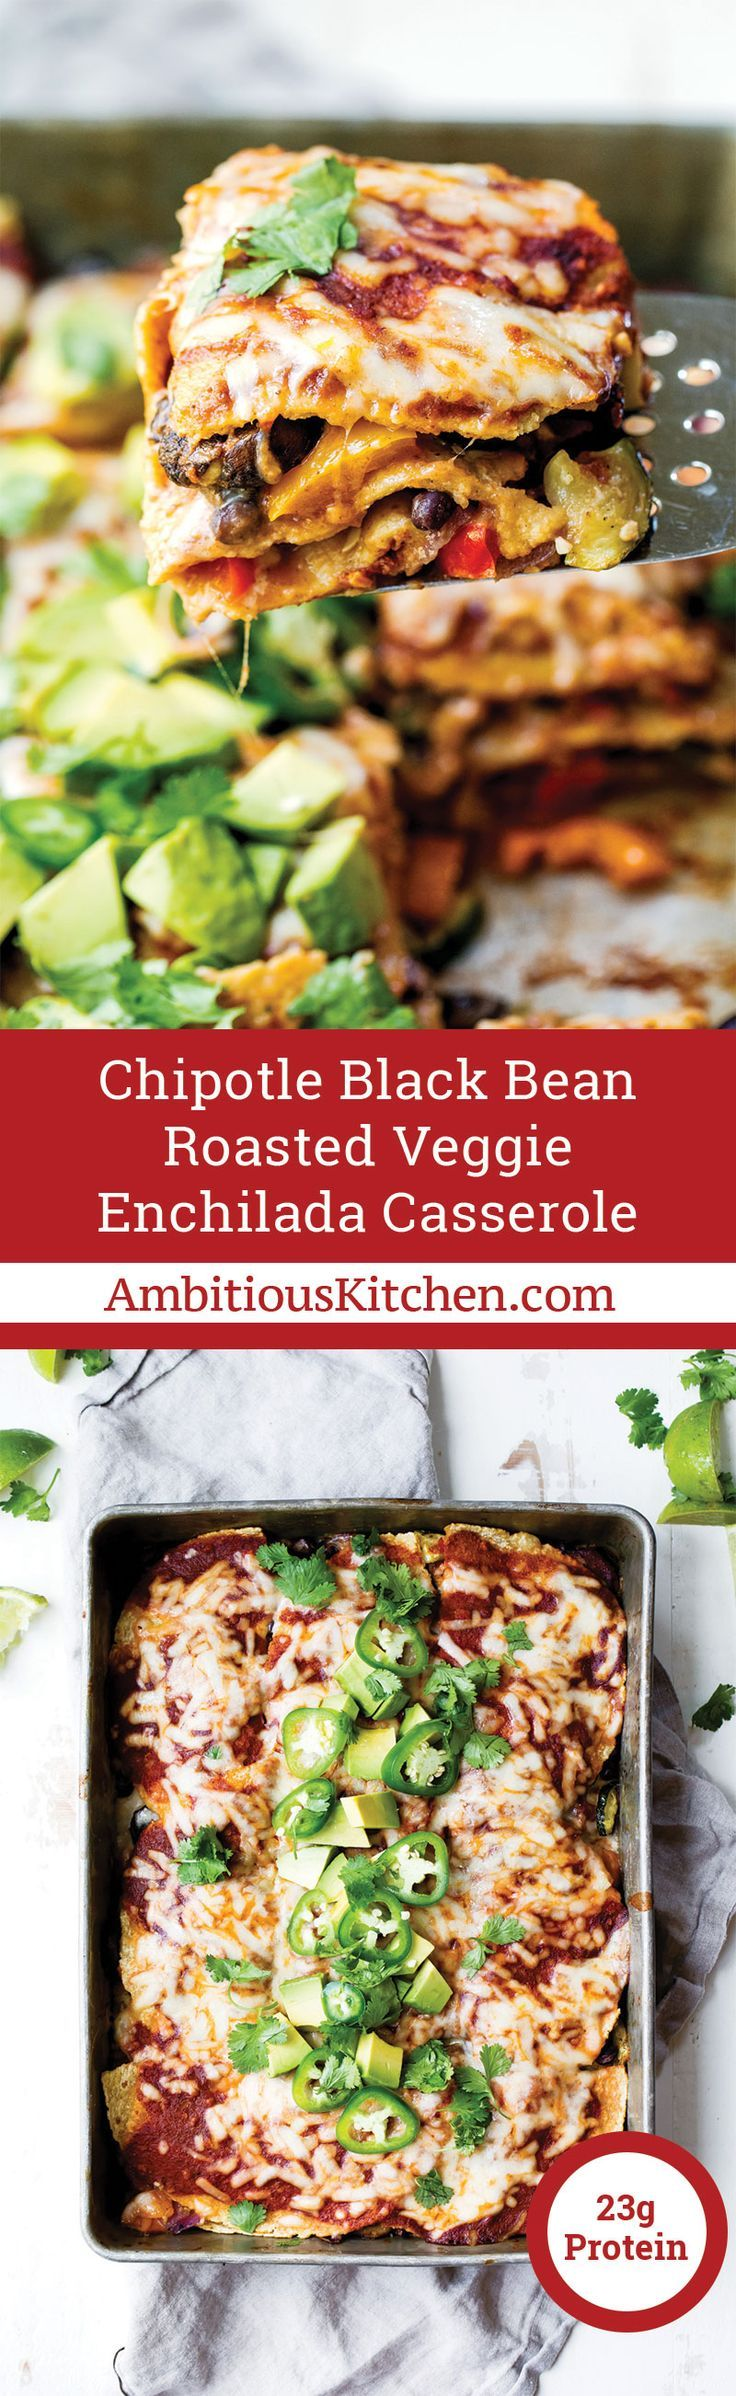 Layers upon layers of veggies snuggled between black beans, corn tortillas, a homemade chipotle enchilada sauce and cheese. The best and easiest vegetarian enchiladas!